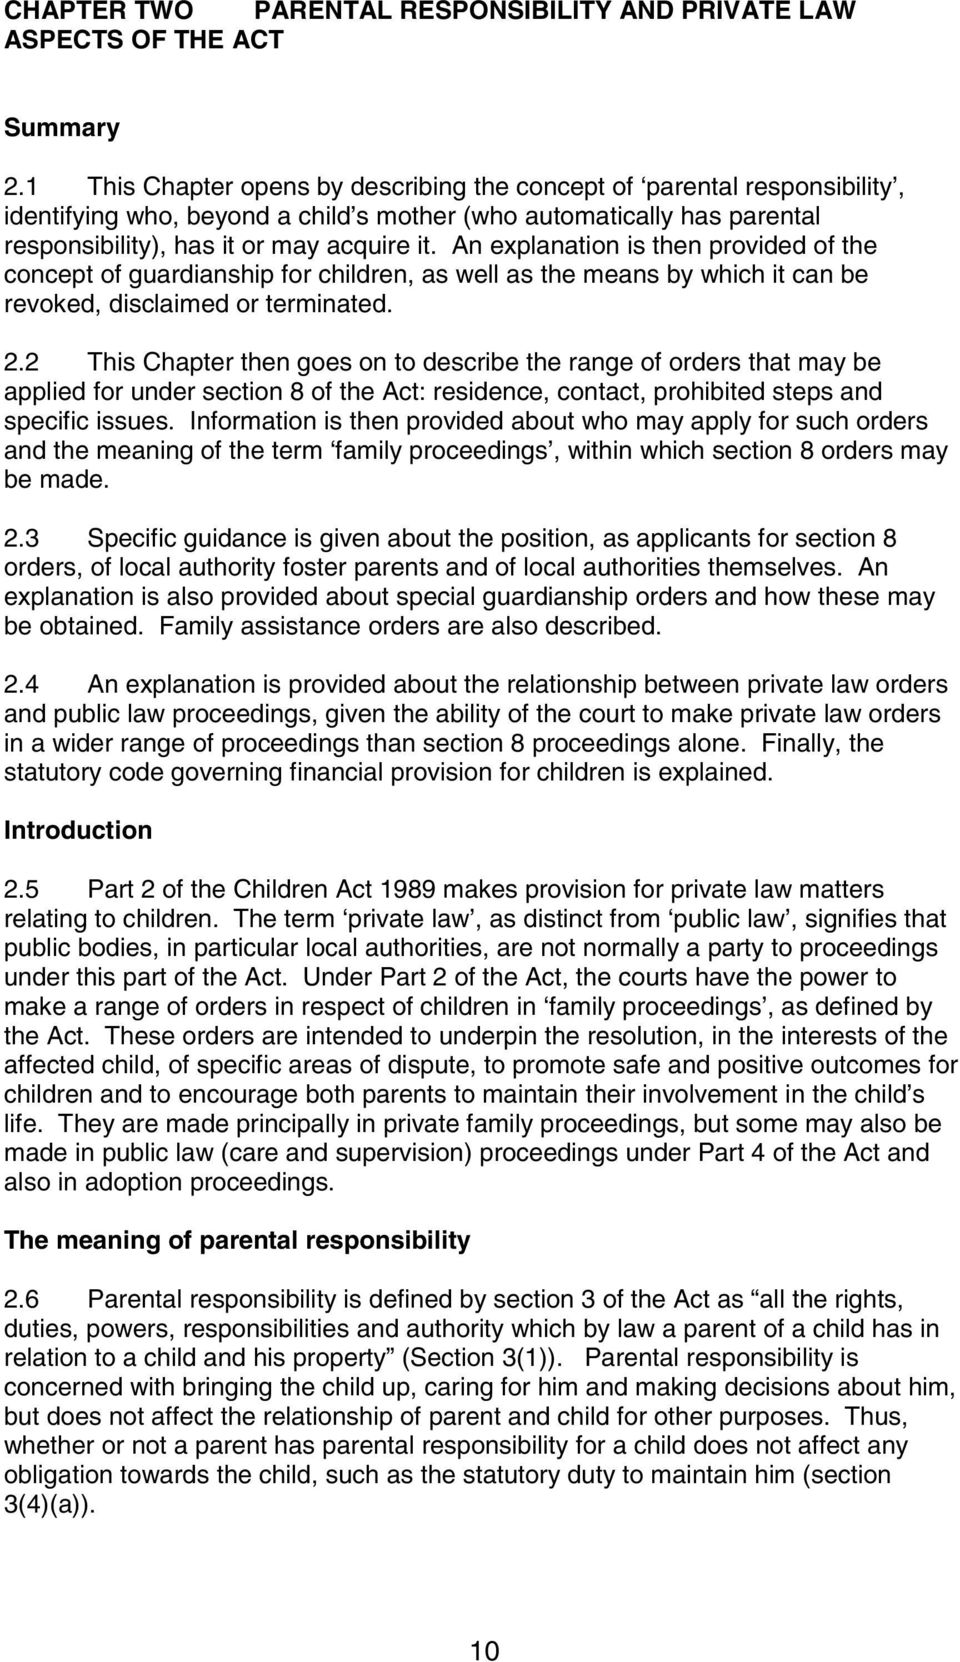 An explanation is then provided of the concept of guardianship for children, as well as the means by which it can be revoked, disclaimed or terminated. 2.